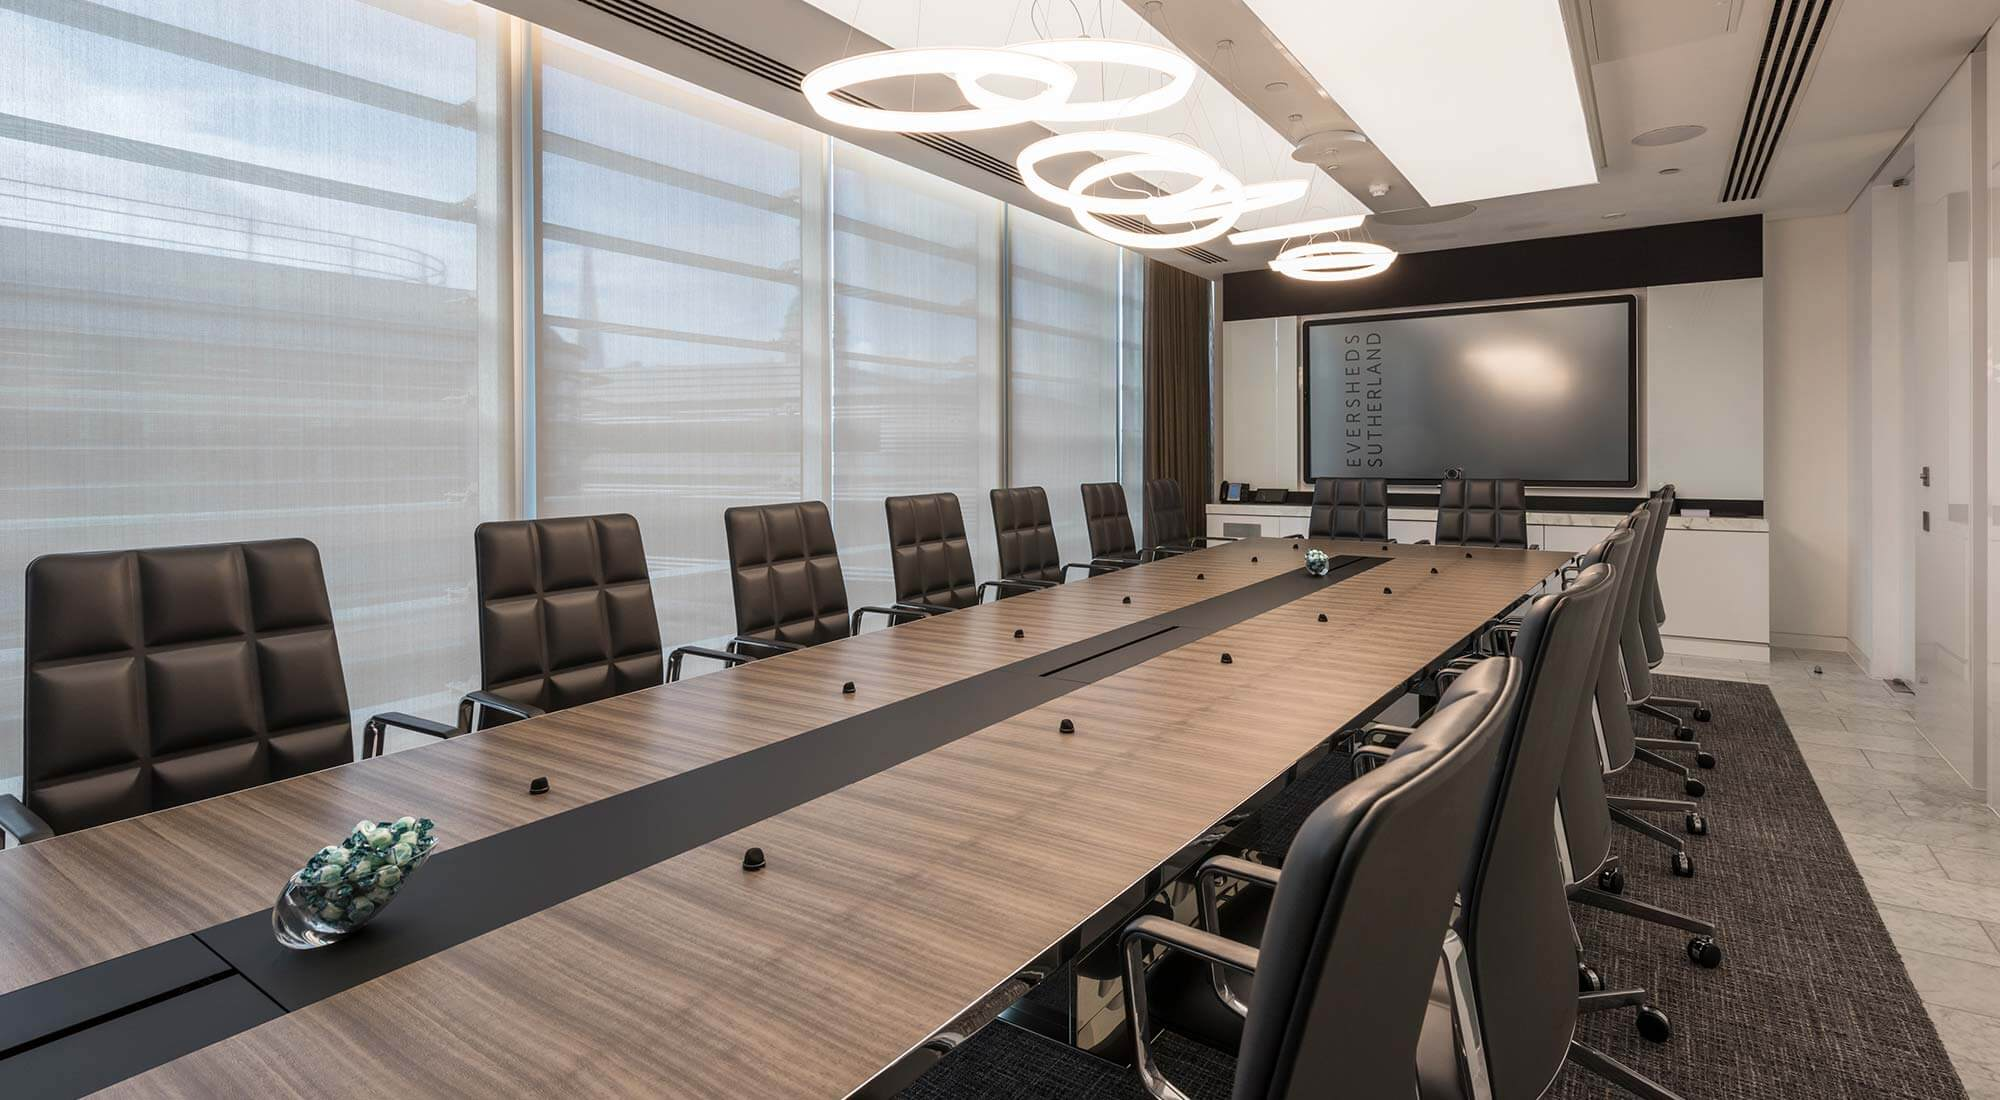 london hq boardroom vibia feature pendants and light raft